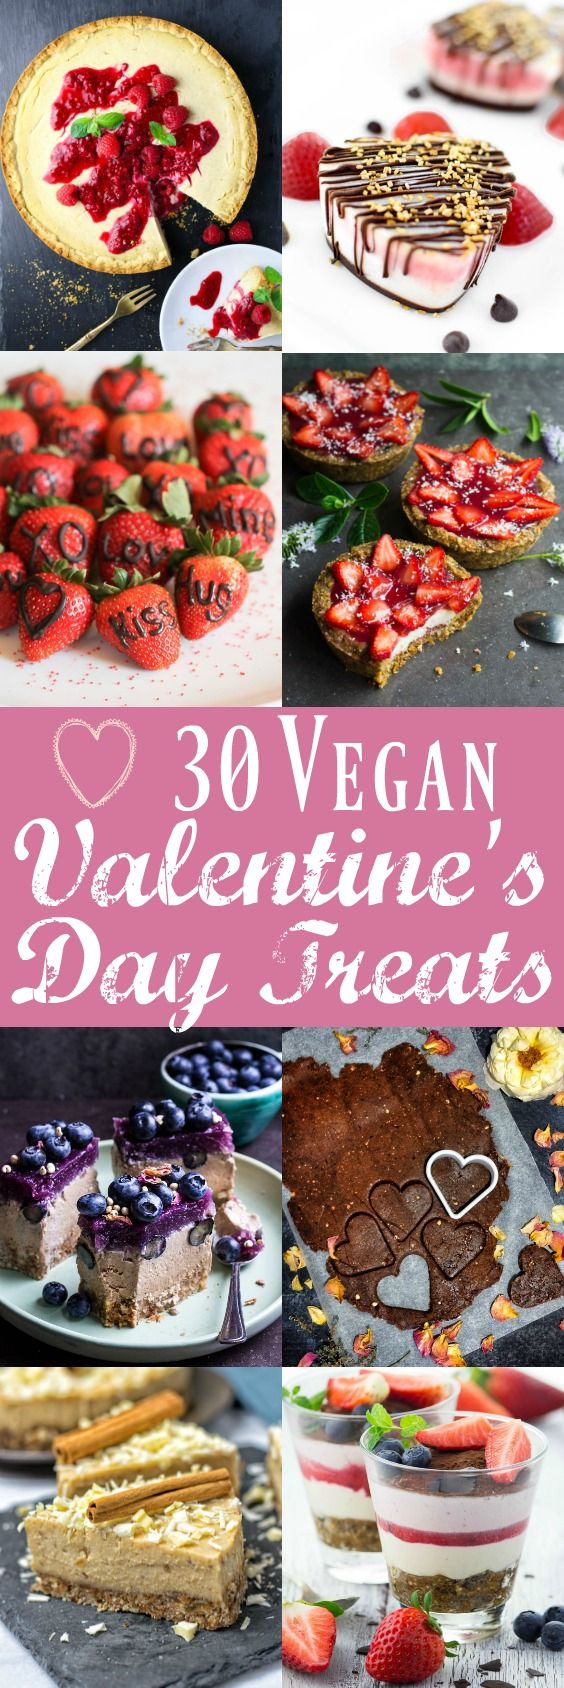 Vegan cheesecake, truffles, cookies, ice cream and so much more! Surprise your loved ones with one of these delicious vegan treats for Valentine's Day.